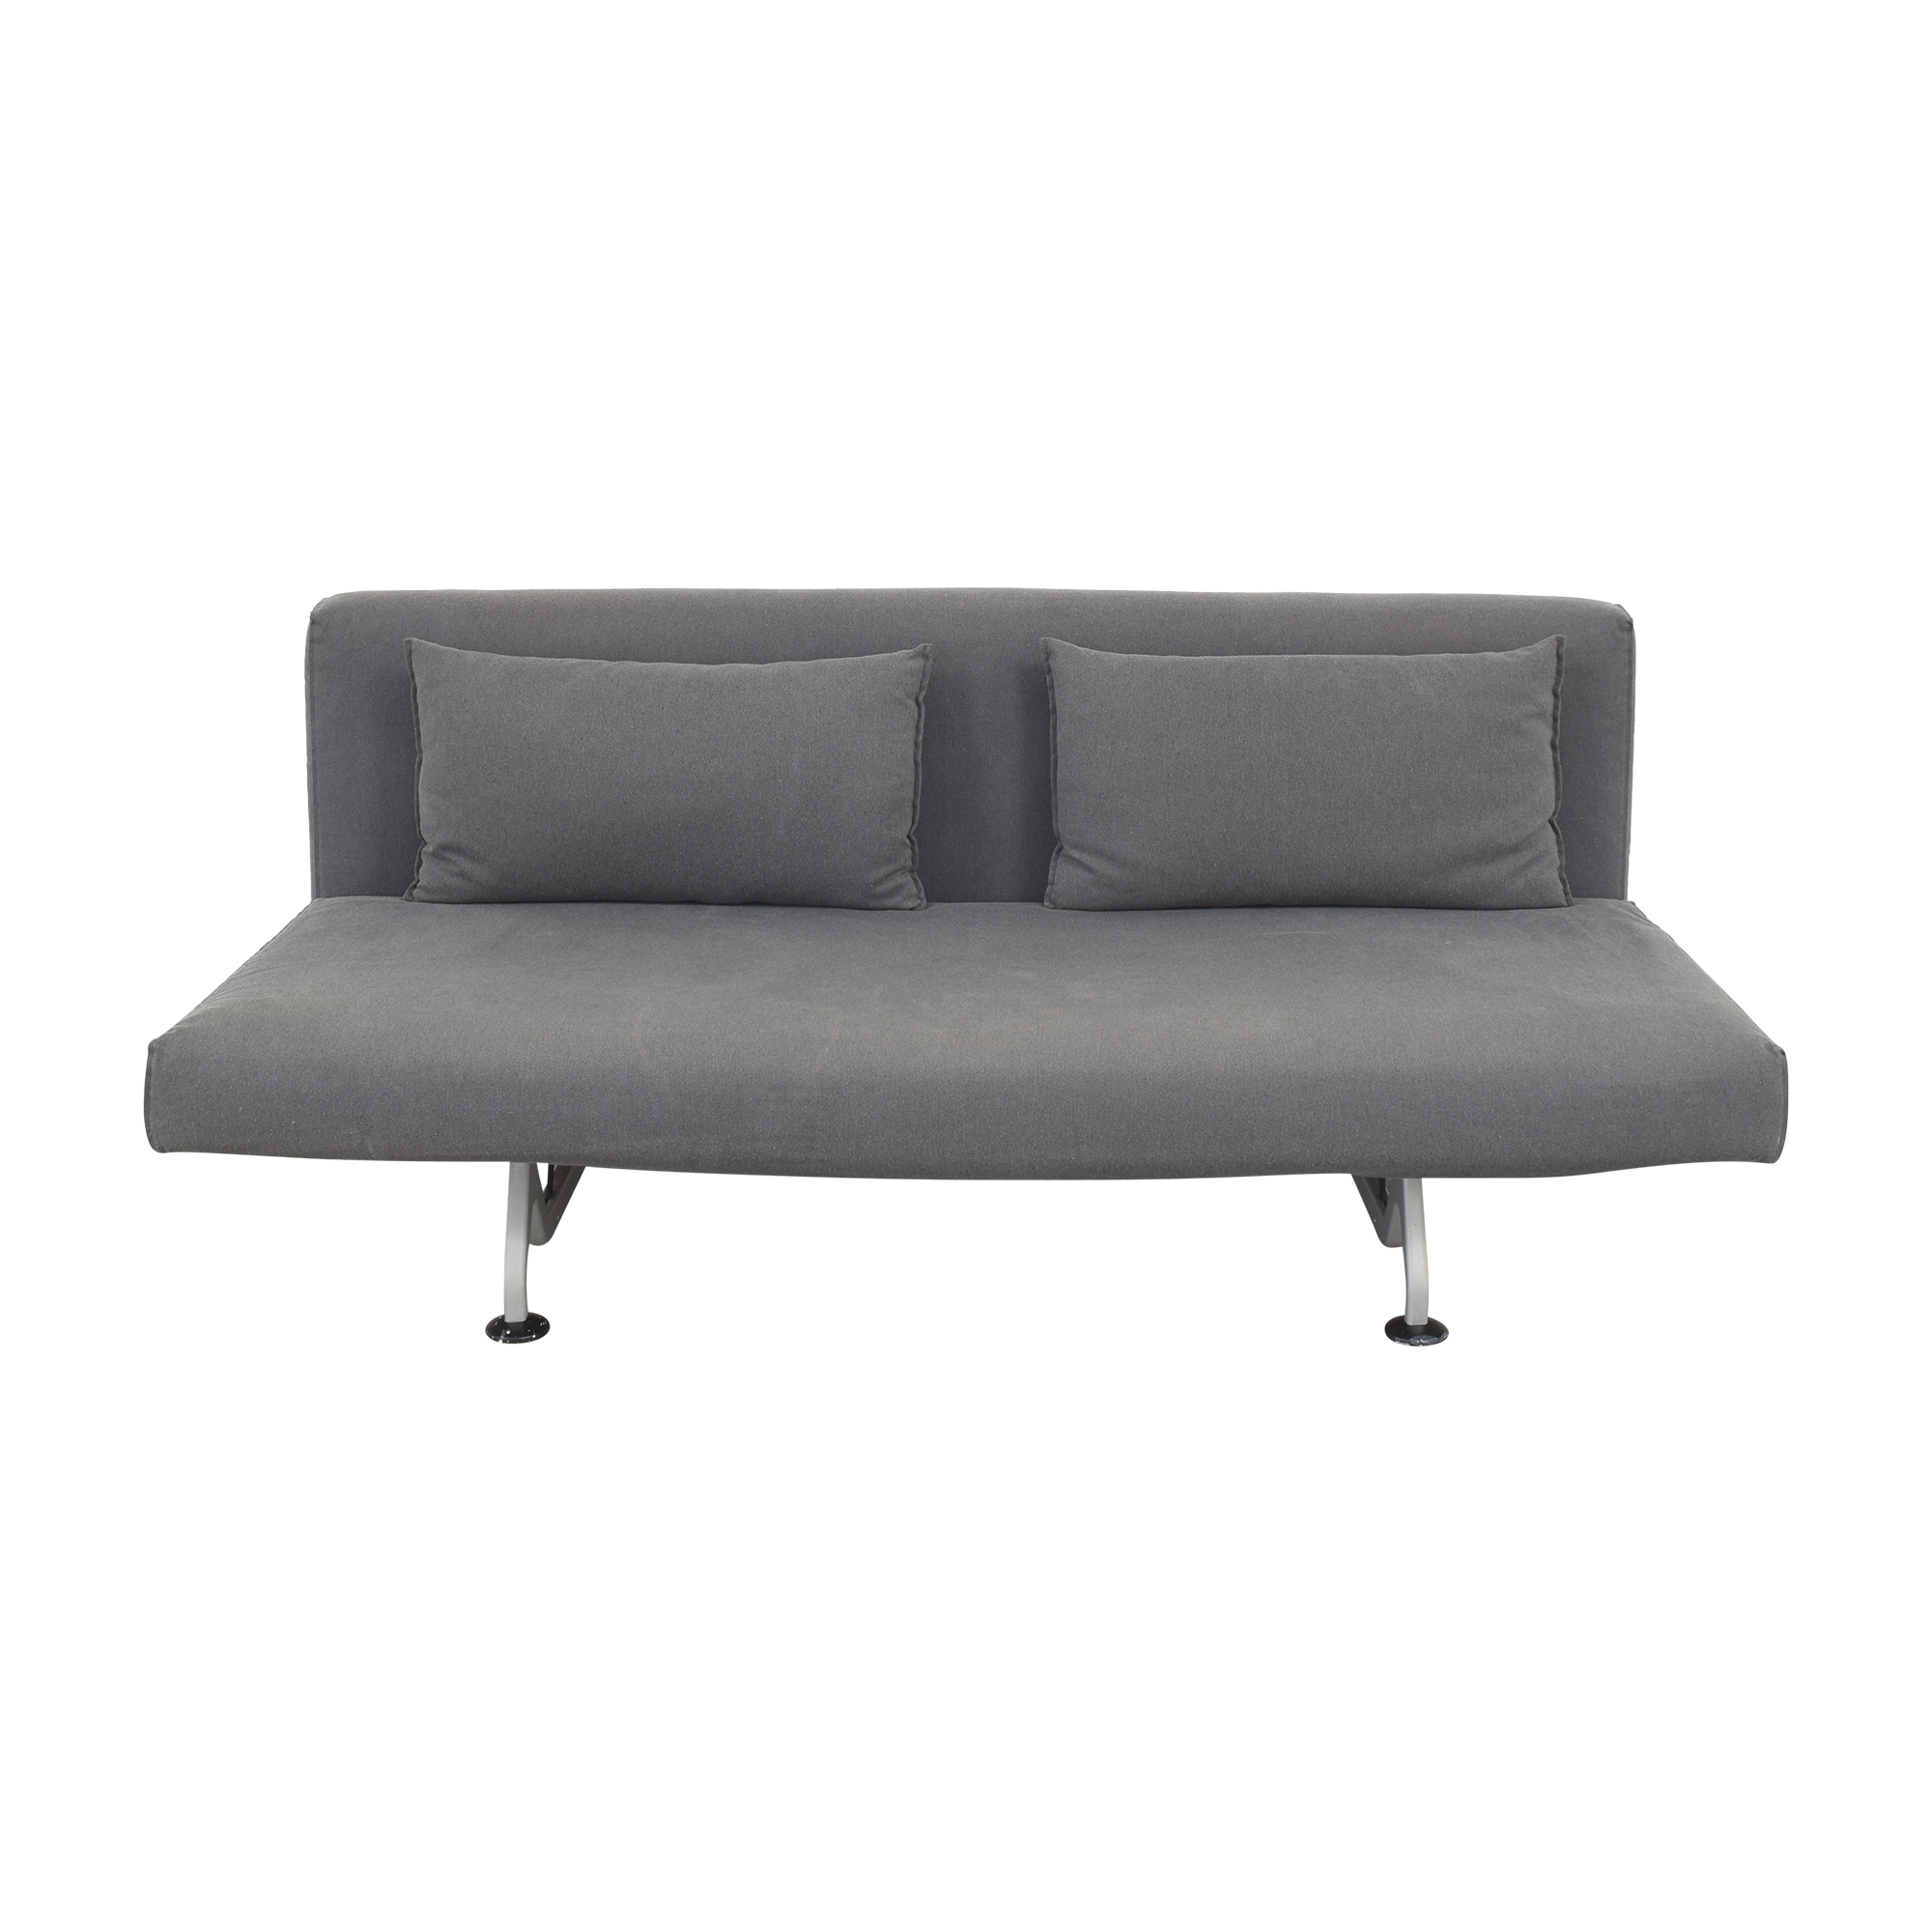 Design Within Reach Design Within Reach Tacchini Sliding Sleeper Sofa second hand